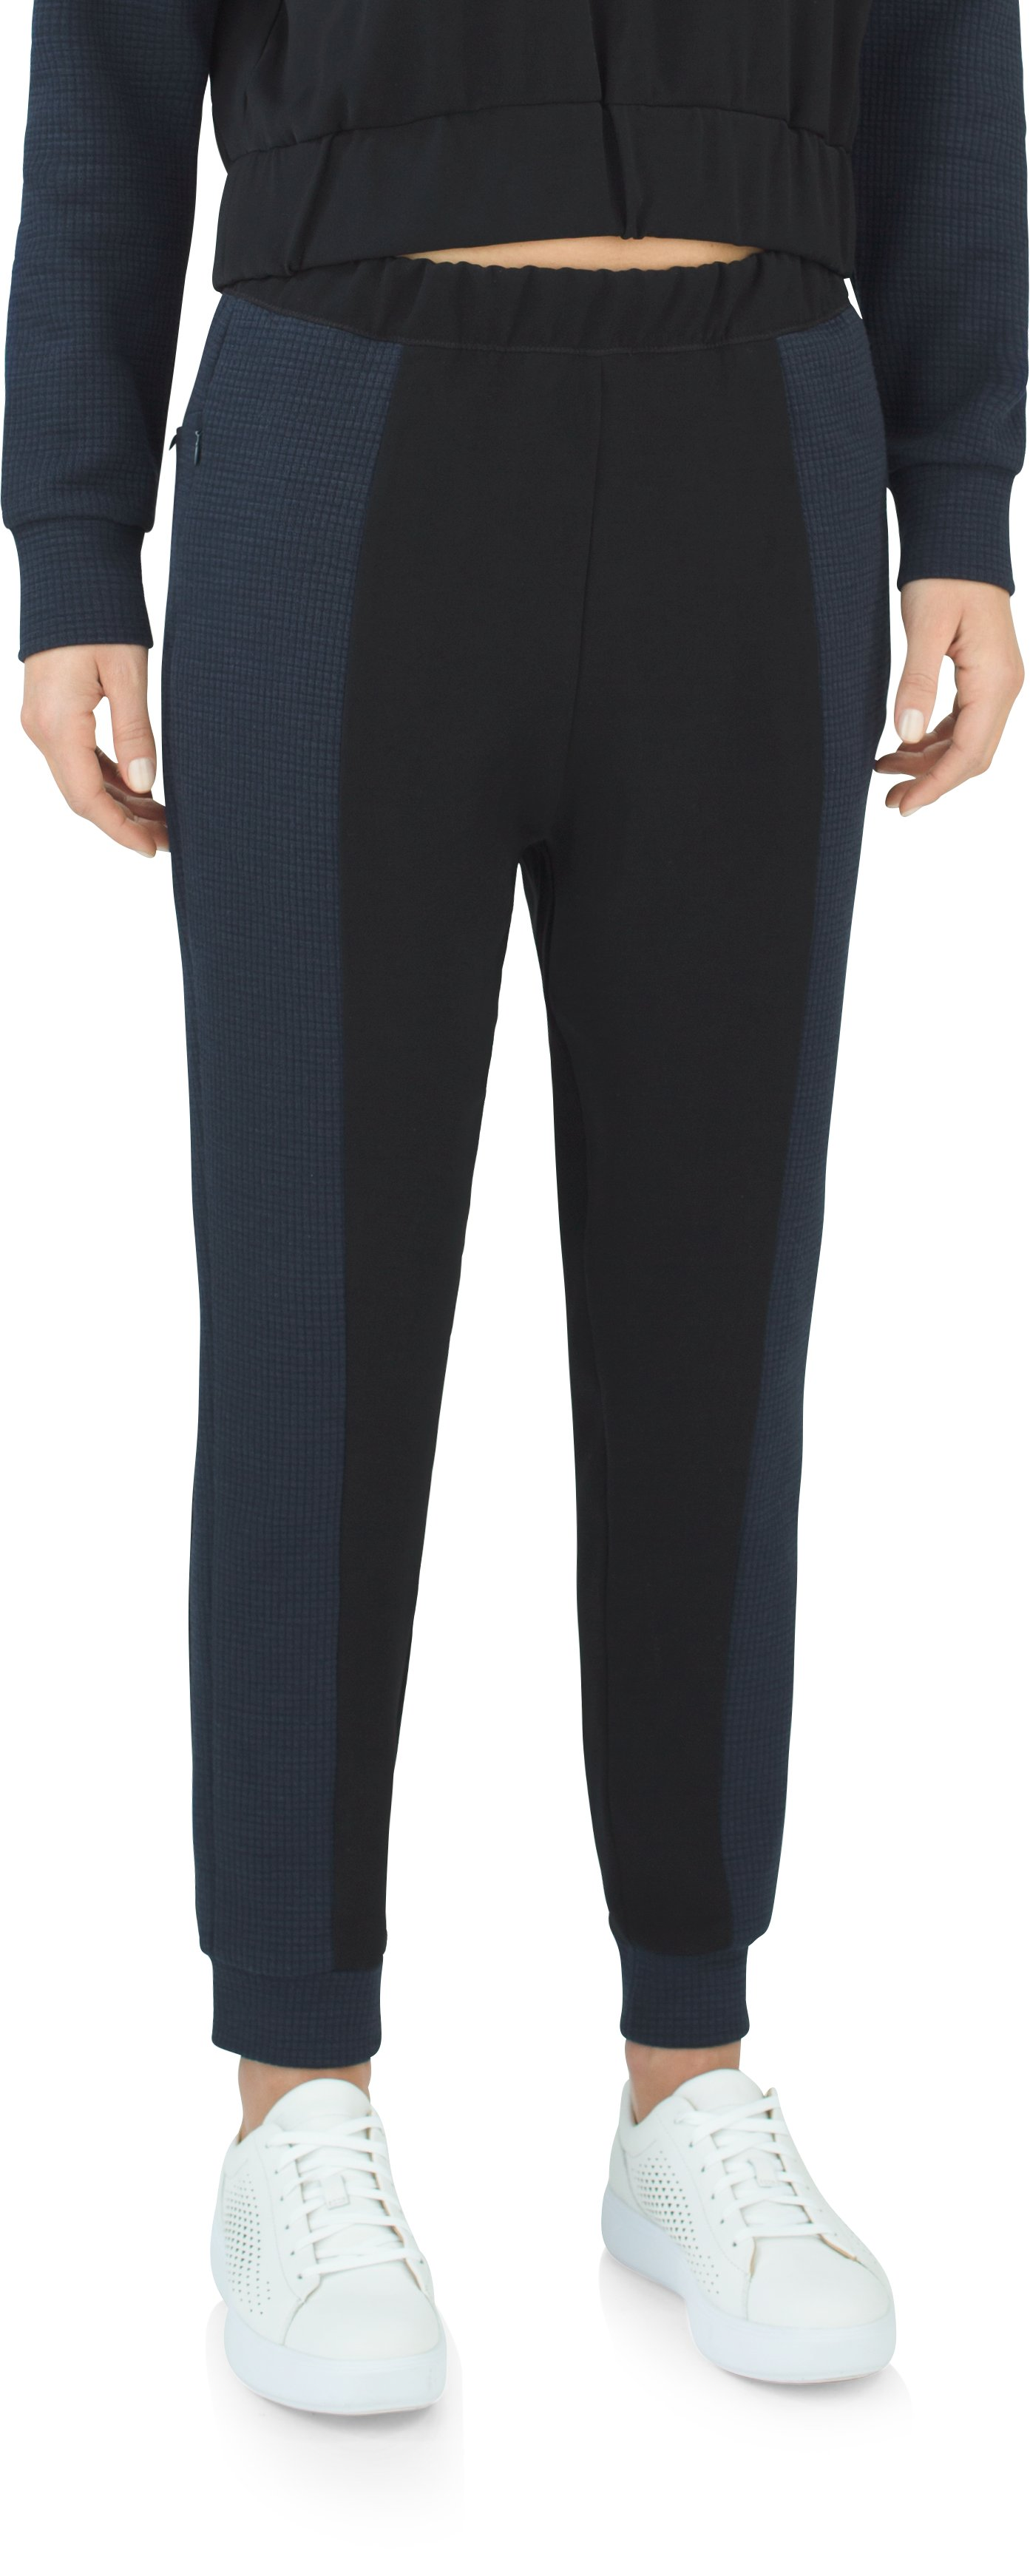 Women's Sweatpants, Black